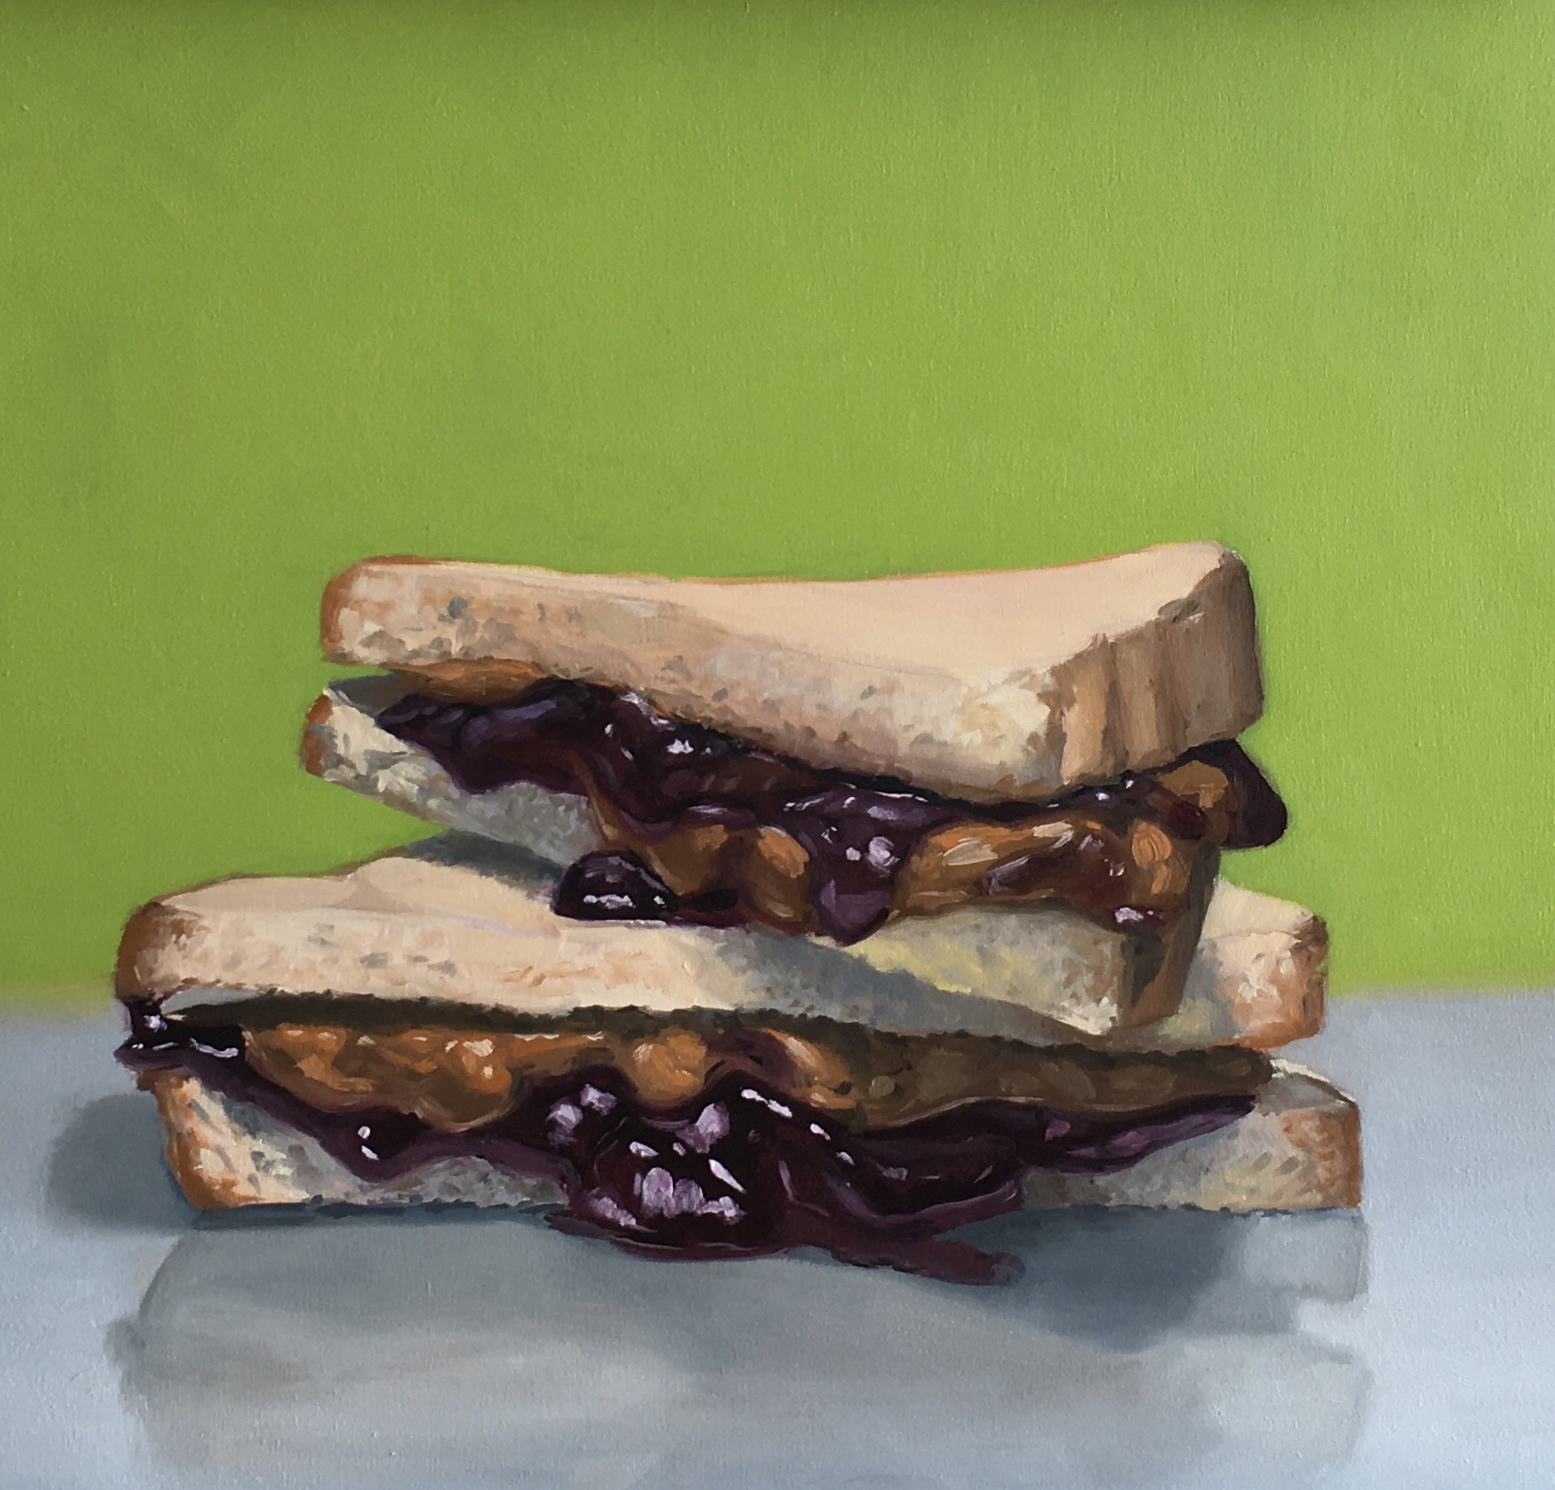 Halcyon No. 3 (Peanut Butter and Jelly)